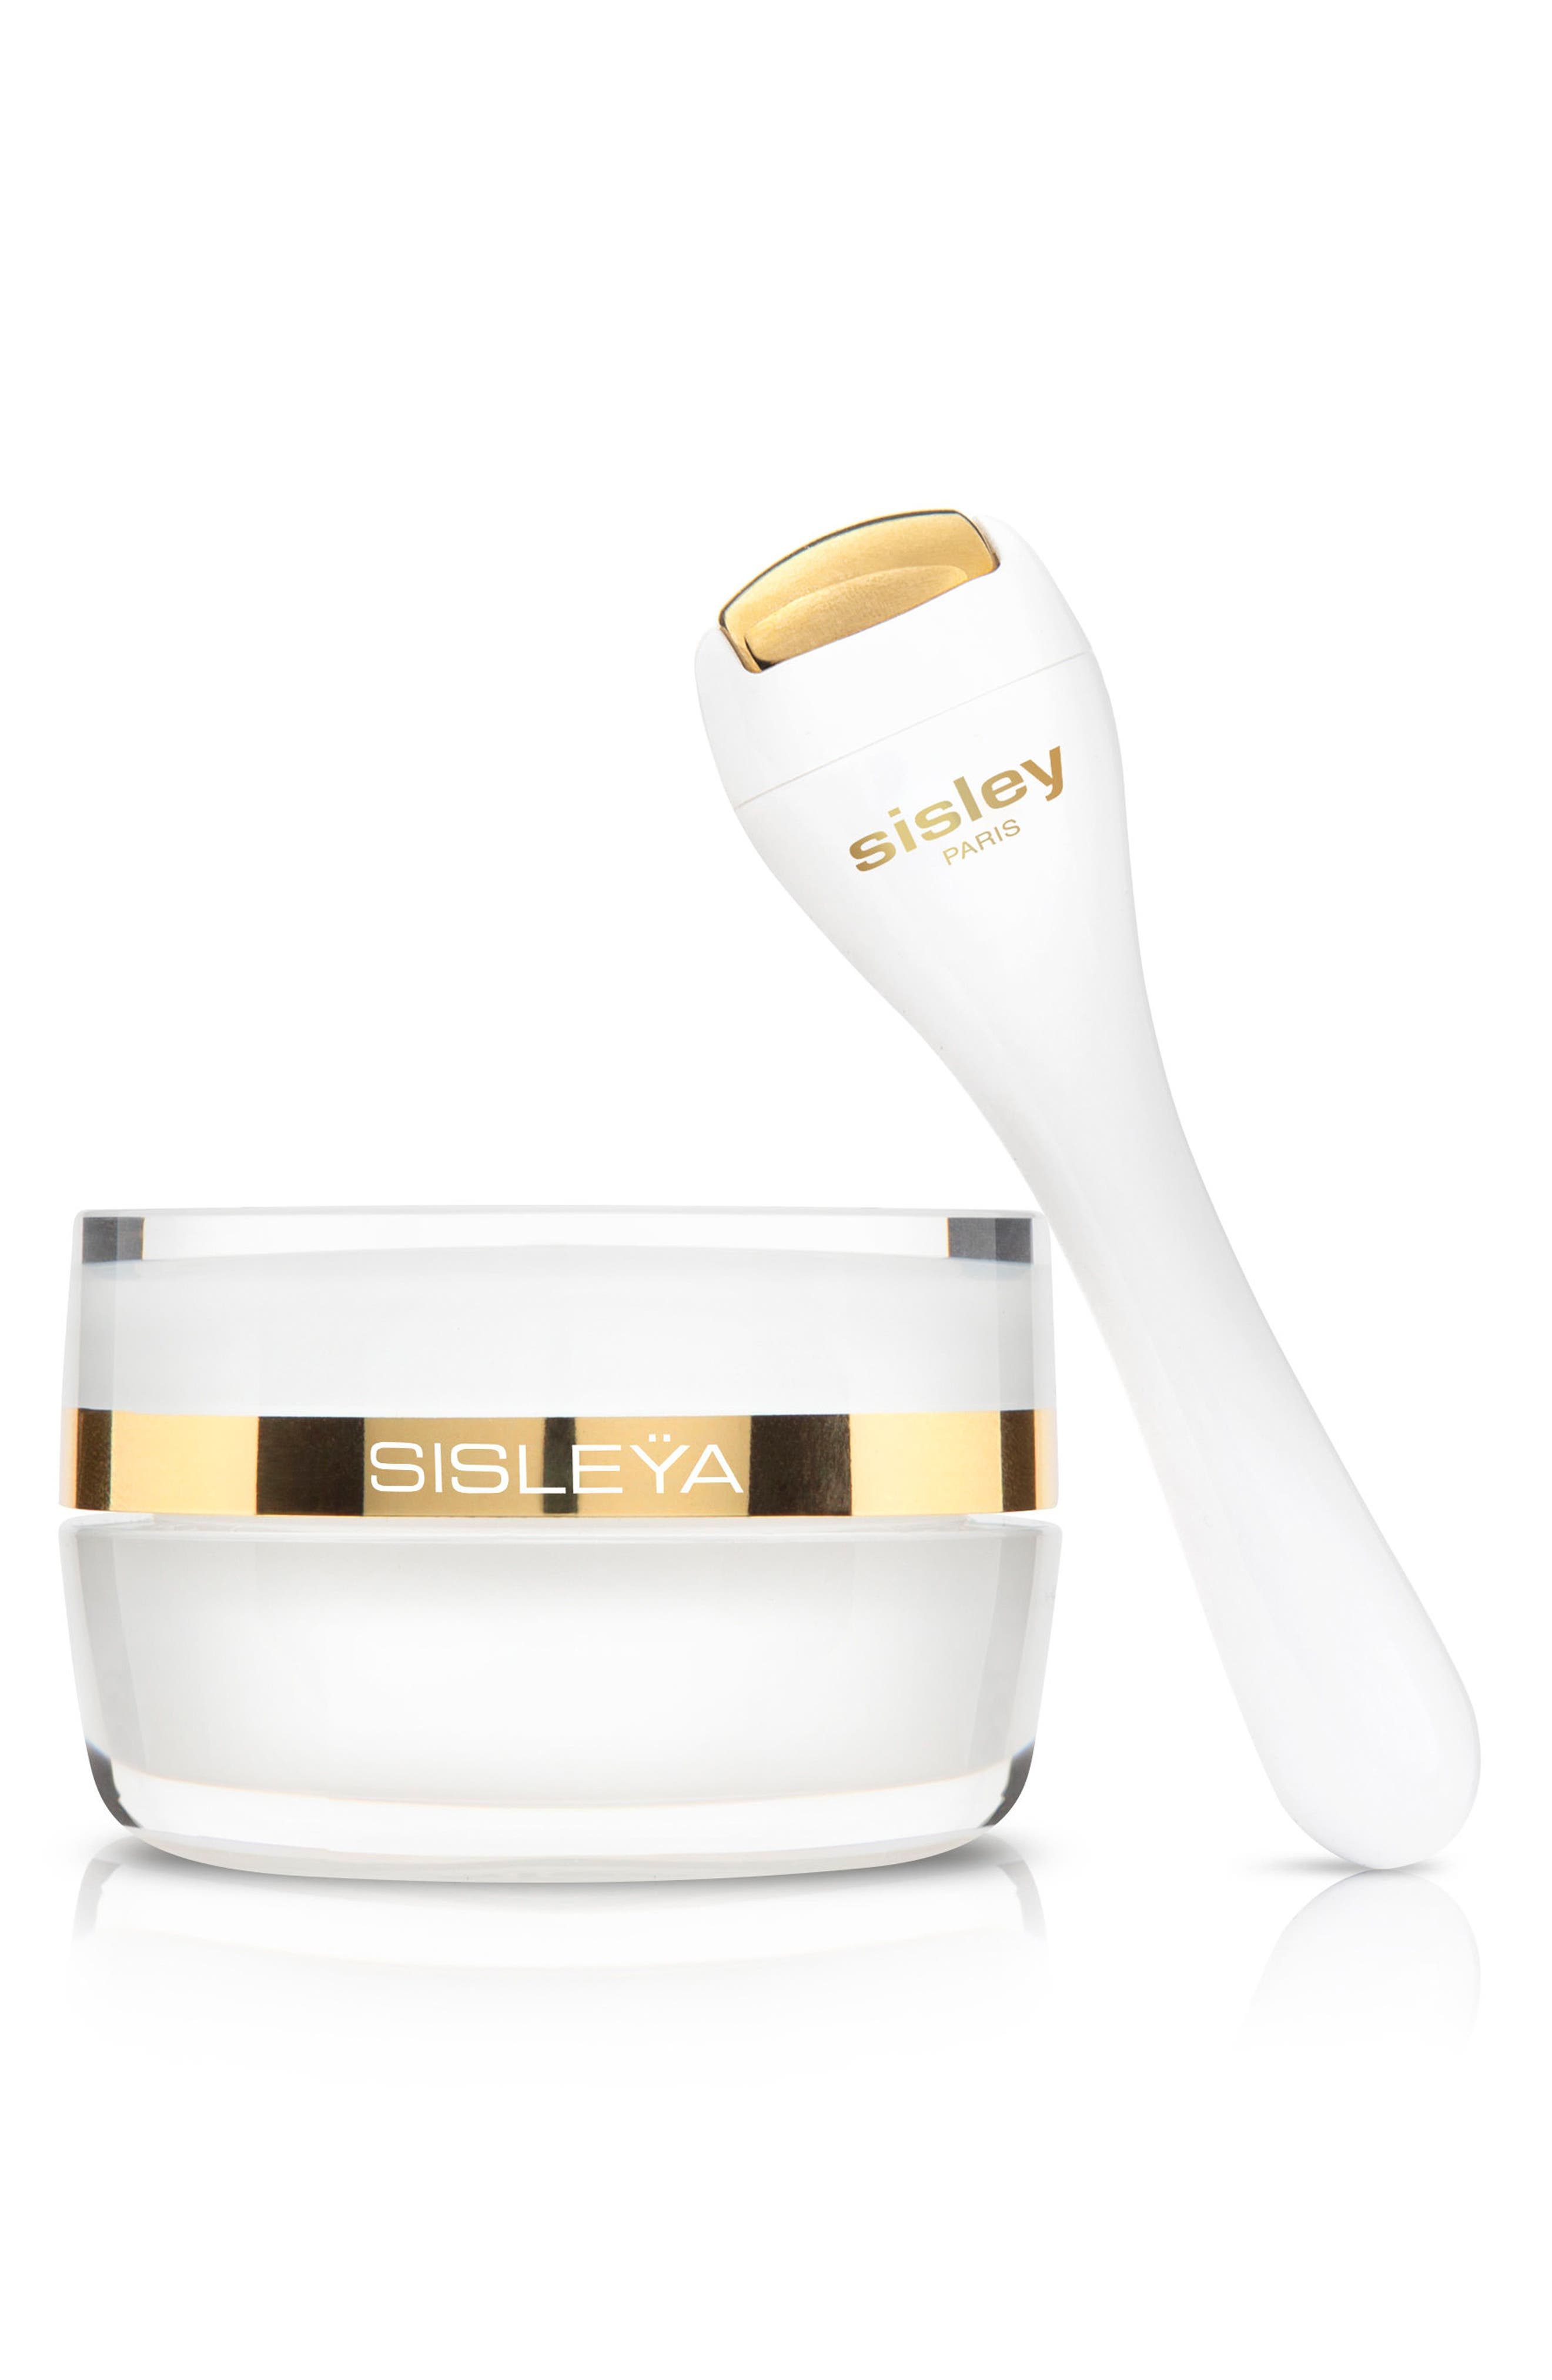 Sisley Paris Sisleÿa L'Intégral Anti-Age Eye & Lip Contour Cream & Massage Tool (Limited Edition)